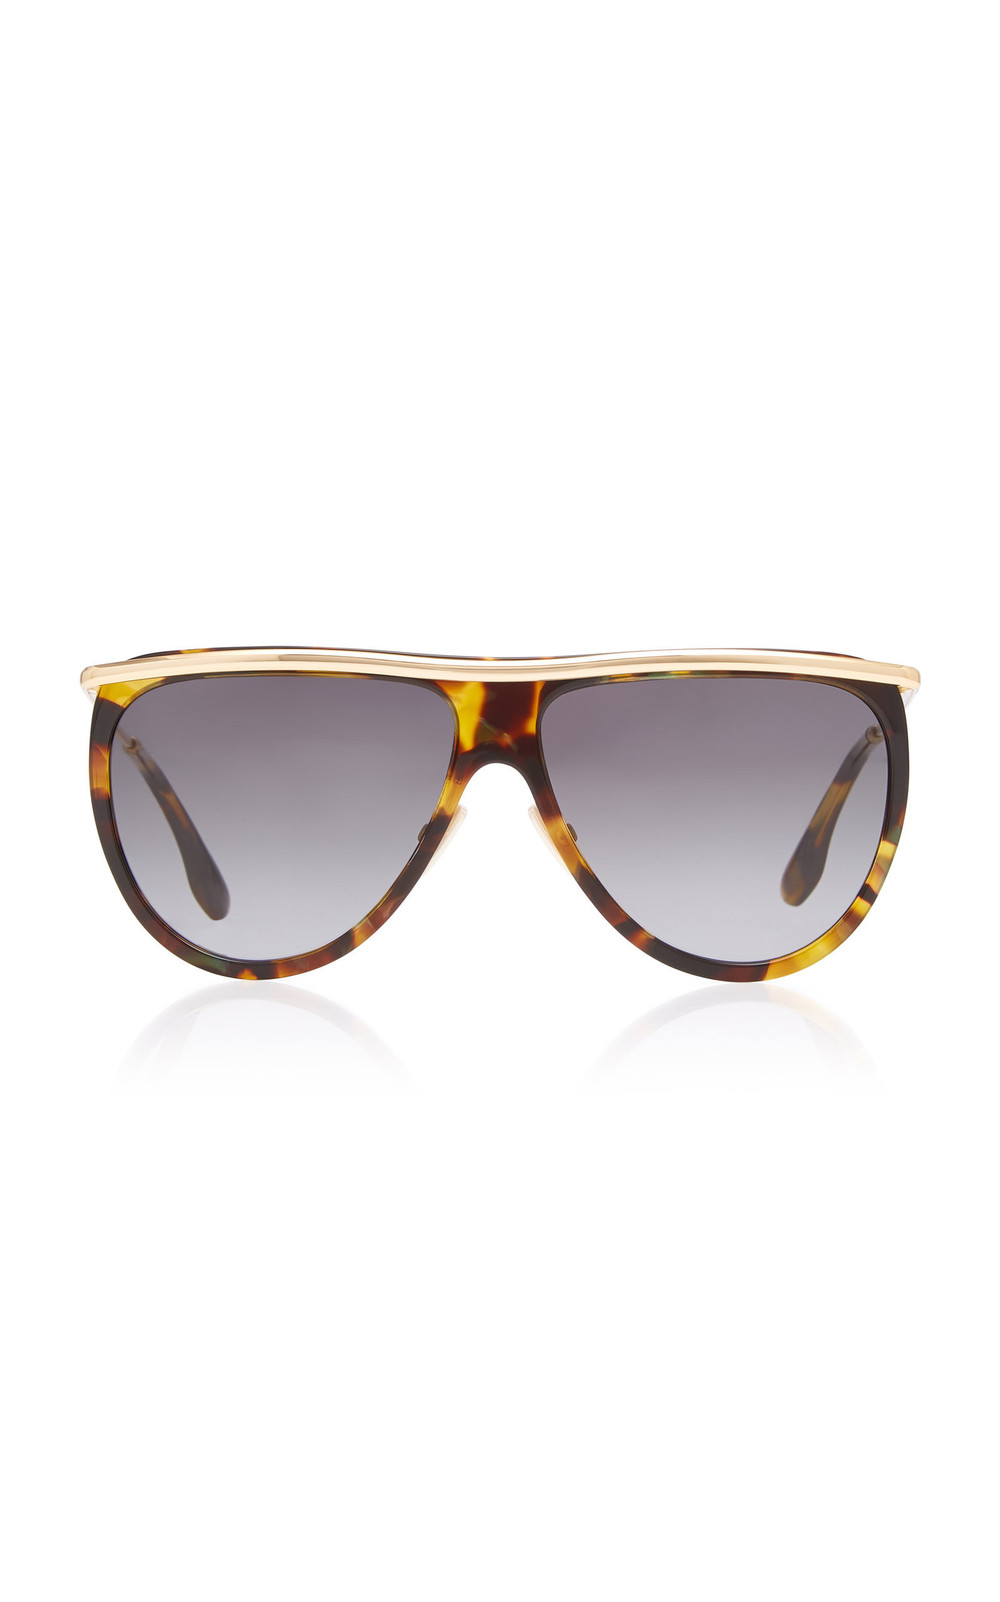 Victoria Beckham Half Moon Aviator-Style Gold-Tone Acetate Sunglasses in brown